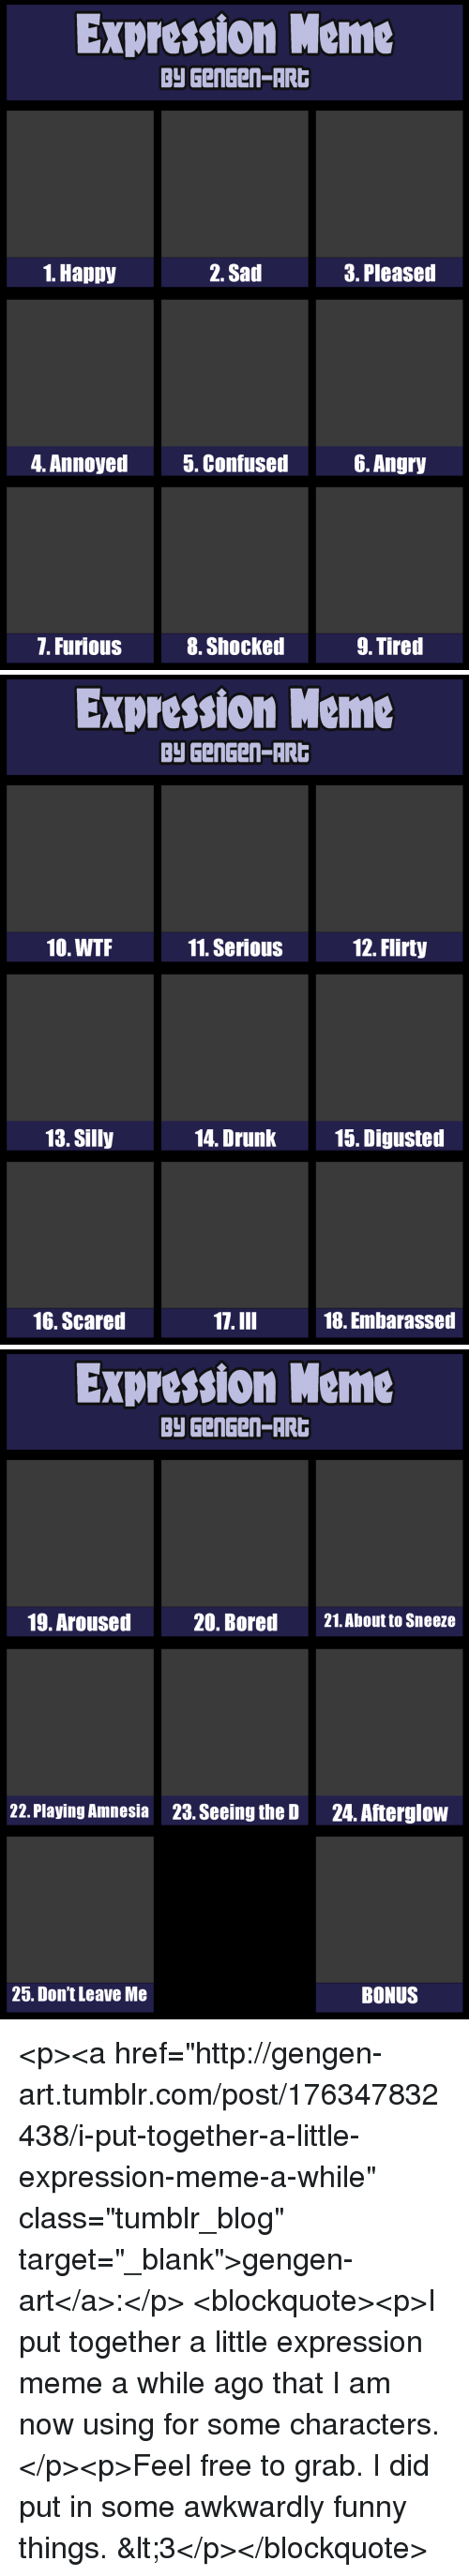 """flirty: Expression Meme  Py GenGen-AR  1. Happy  2. Sad  3. Pleased  4. Annoyed  5. Confused6. Angry  7. Furious  8. Shocked  9. Tired   Expression Meme  Py GenGen-AR  10. WTF  11. SeriouS  12. Flirty  13. Silly  14. Drunk  15. Digusted  16. Scared  17.III  18. Embarassed   Expression Meme  Py GenGen-AR  19. Aroused  20. Bored  21.About to Sneeze  22. Playing Amnesia  23. Seeing the D  24. Afterglow  25. Don't Leave Me  BONUS <p><a href=""""http://gengen-art.tumblr.com/post/176347832438/i-put-together-a-little-expression-meme-a-while"""" class=""""tumblr_blog"""" target=""""_blank"""">gengen-art</a>:</p>  <blockquote><p>I put together a little expression meme a while ago that I am now using for some characters.</p><p>Feel free to grab. I did put in some awkwardly funny things. &lt;3</p></blockquote>"""